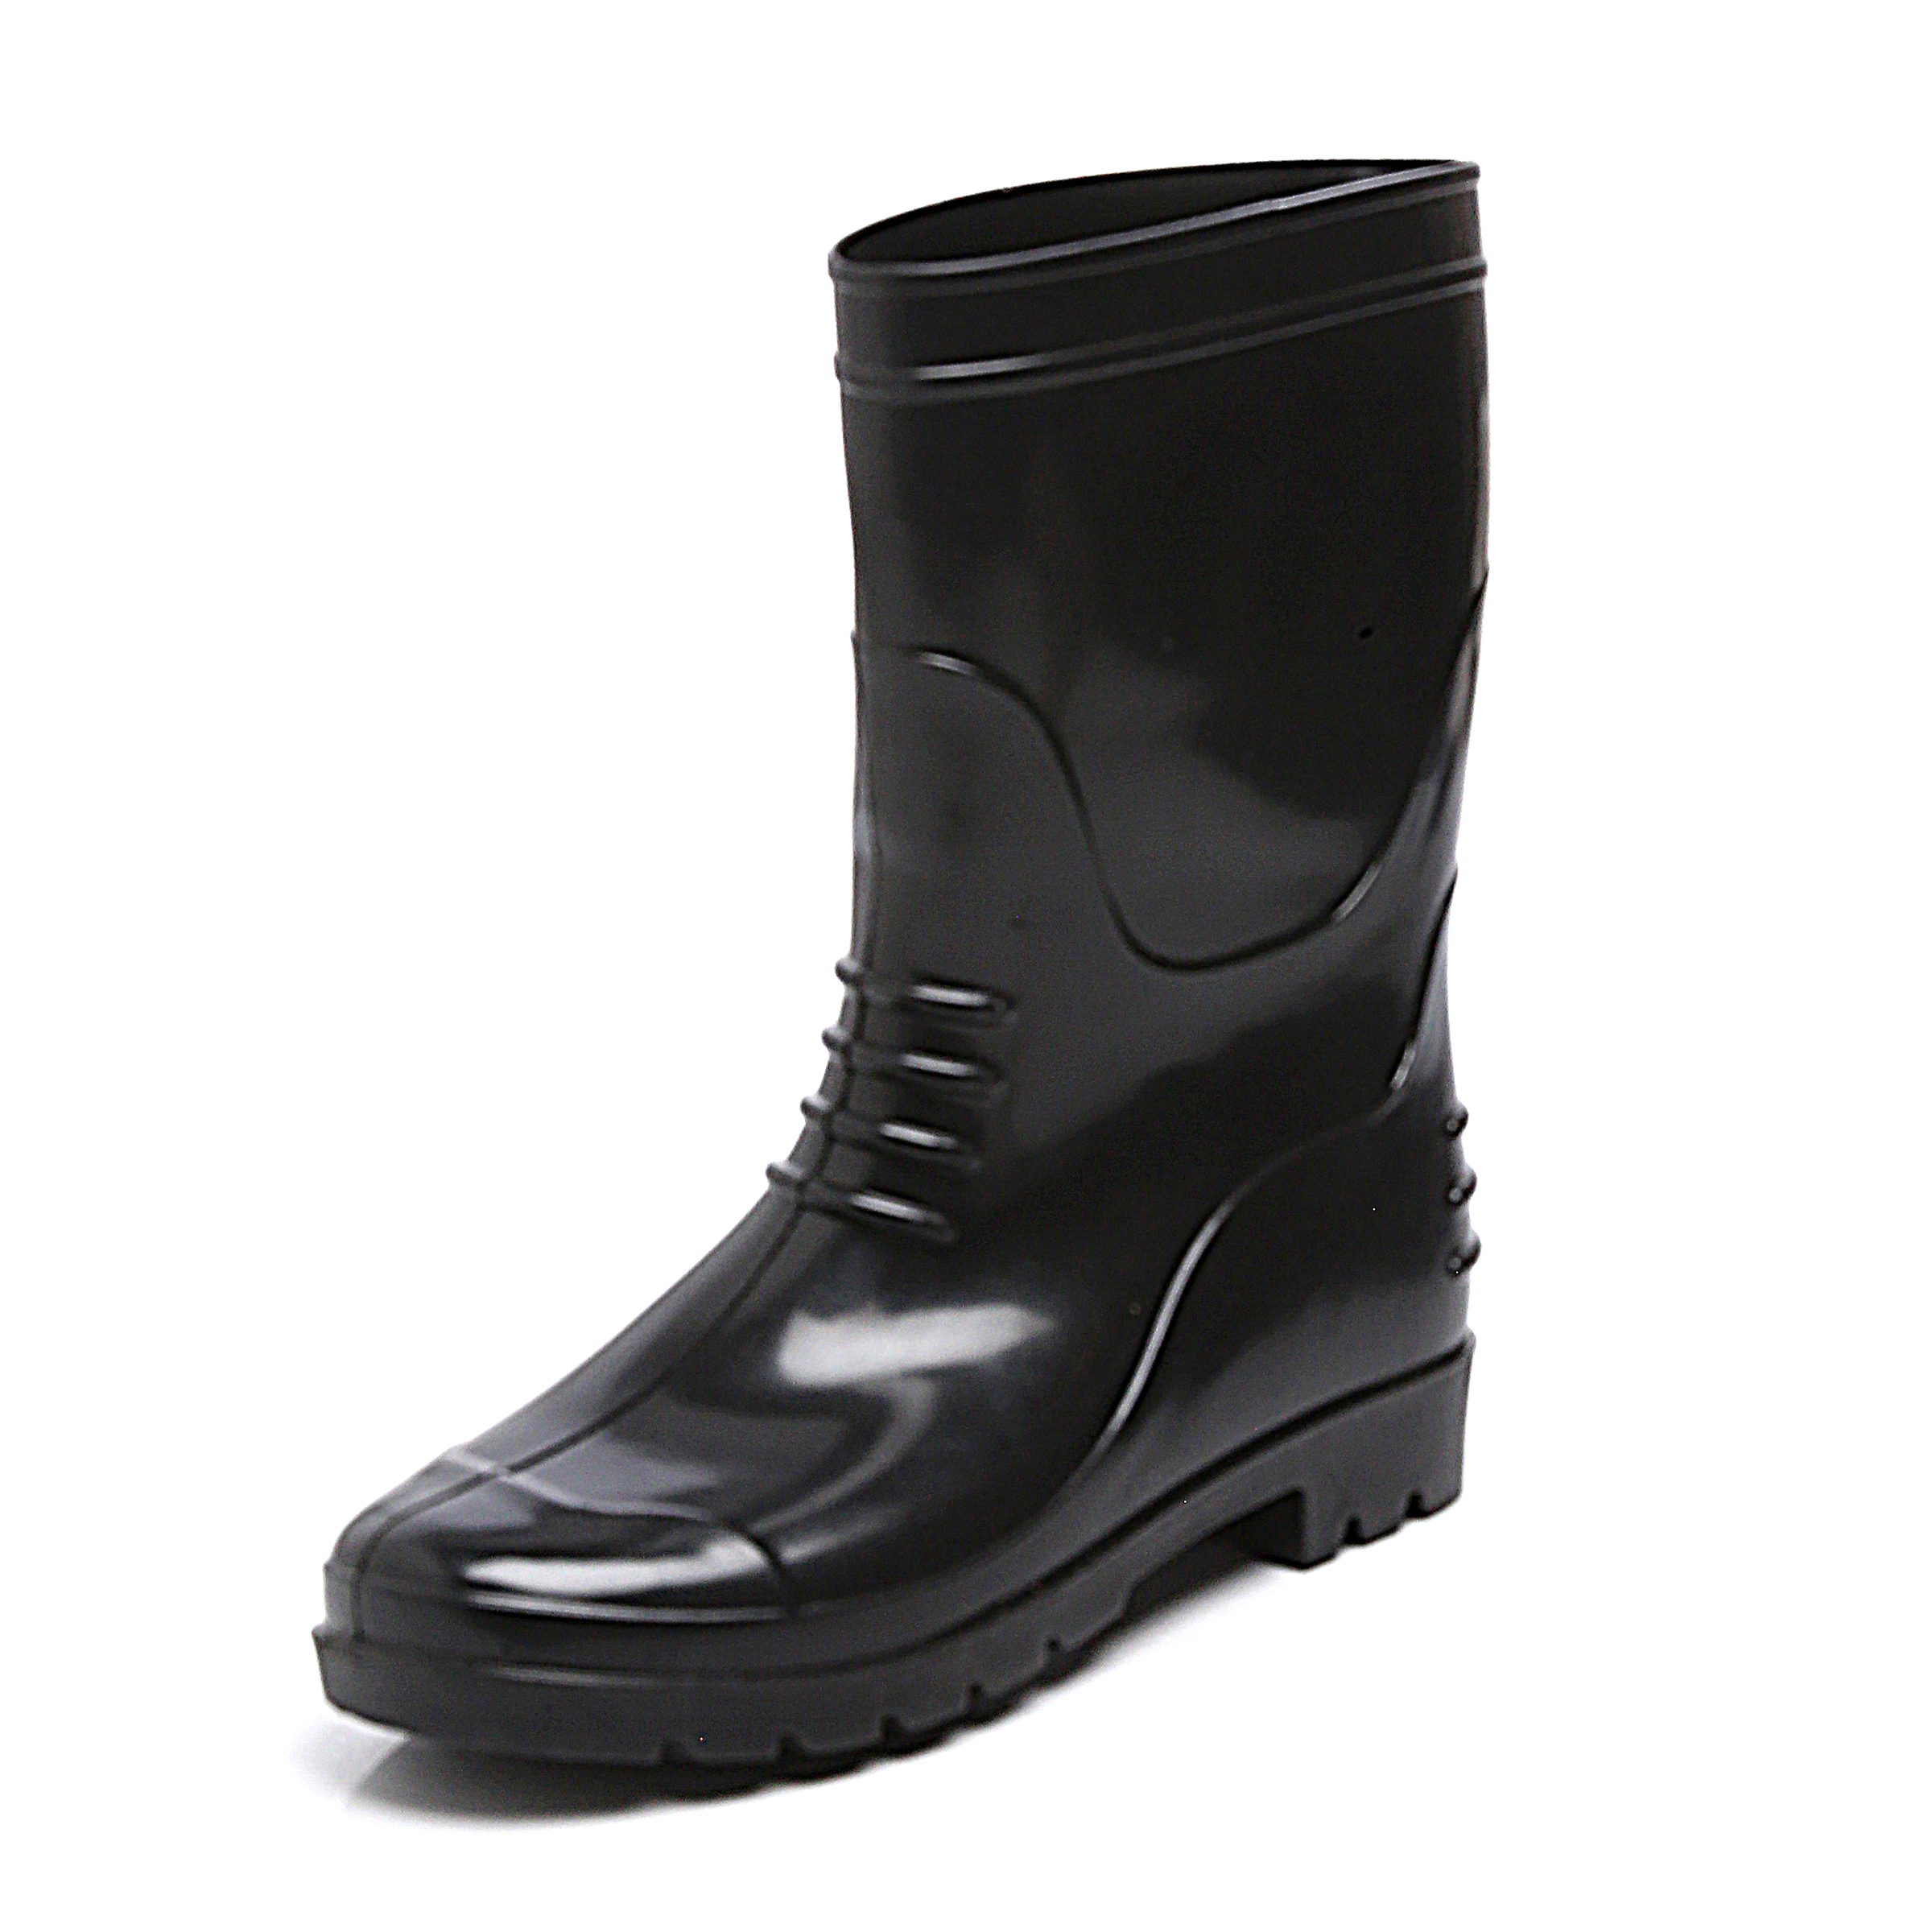 Male Black Safety Gumboots